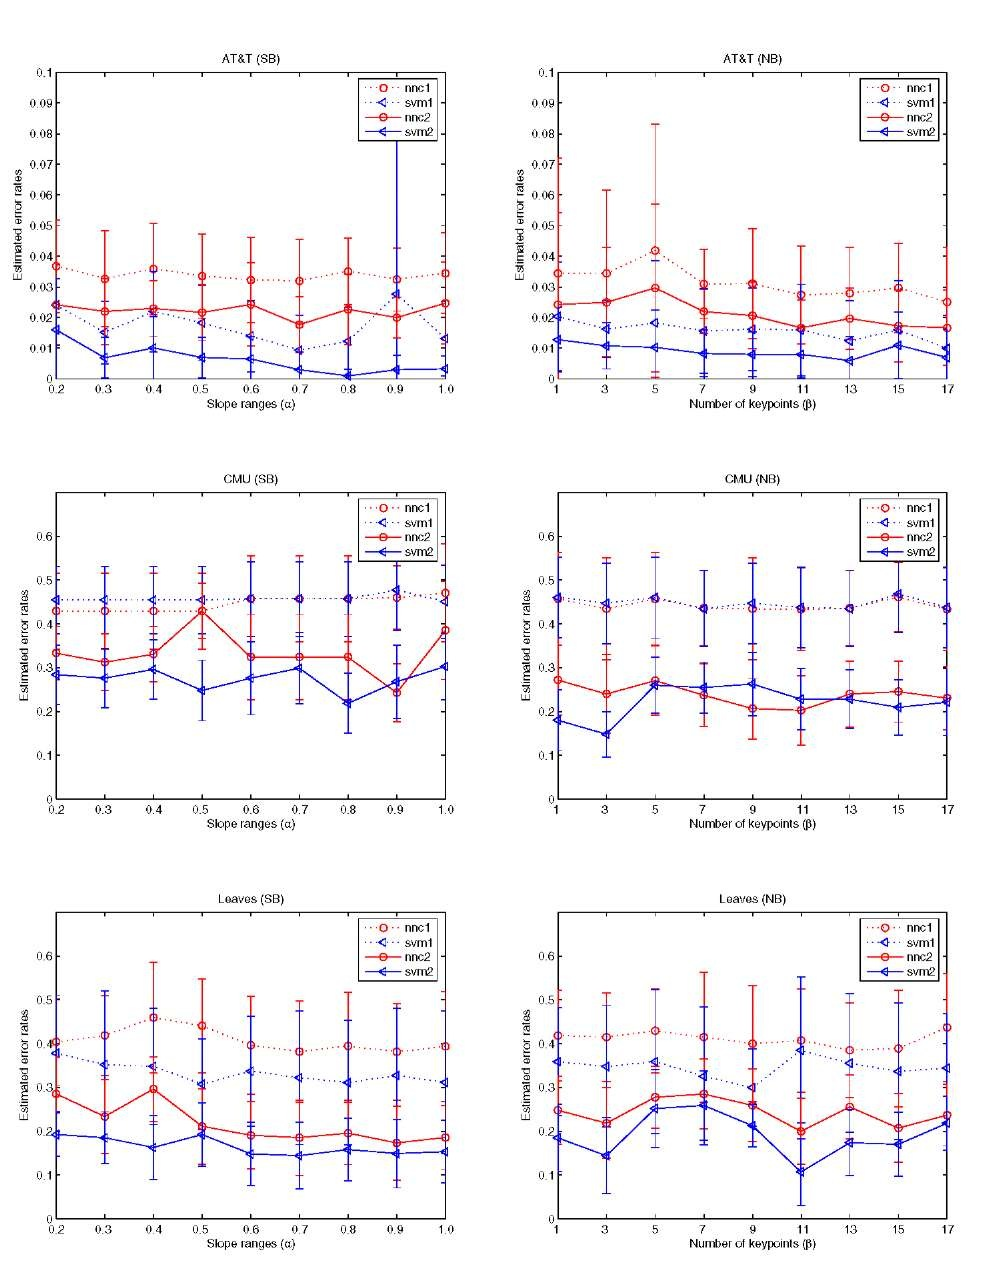 A comparison of the estimated error rates of two classifiers designed with the SIFT-without (nnc1 and svm1 -dashed lines of o andmarkers) and SIFT-with methods (nnc2 and svm2 - solid lines of the same markers) for the three databases: (a) top left, (b) top right, (c) middle left, (d) middle right, (e) bottom left, and (f) bottom right; (a) and (b) are for the two rules (i.e., SB and NB rules) for AT&T; (c) and (d) are for the two methods of CMU; (e) and (f) are for Leaves